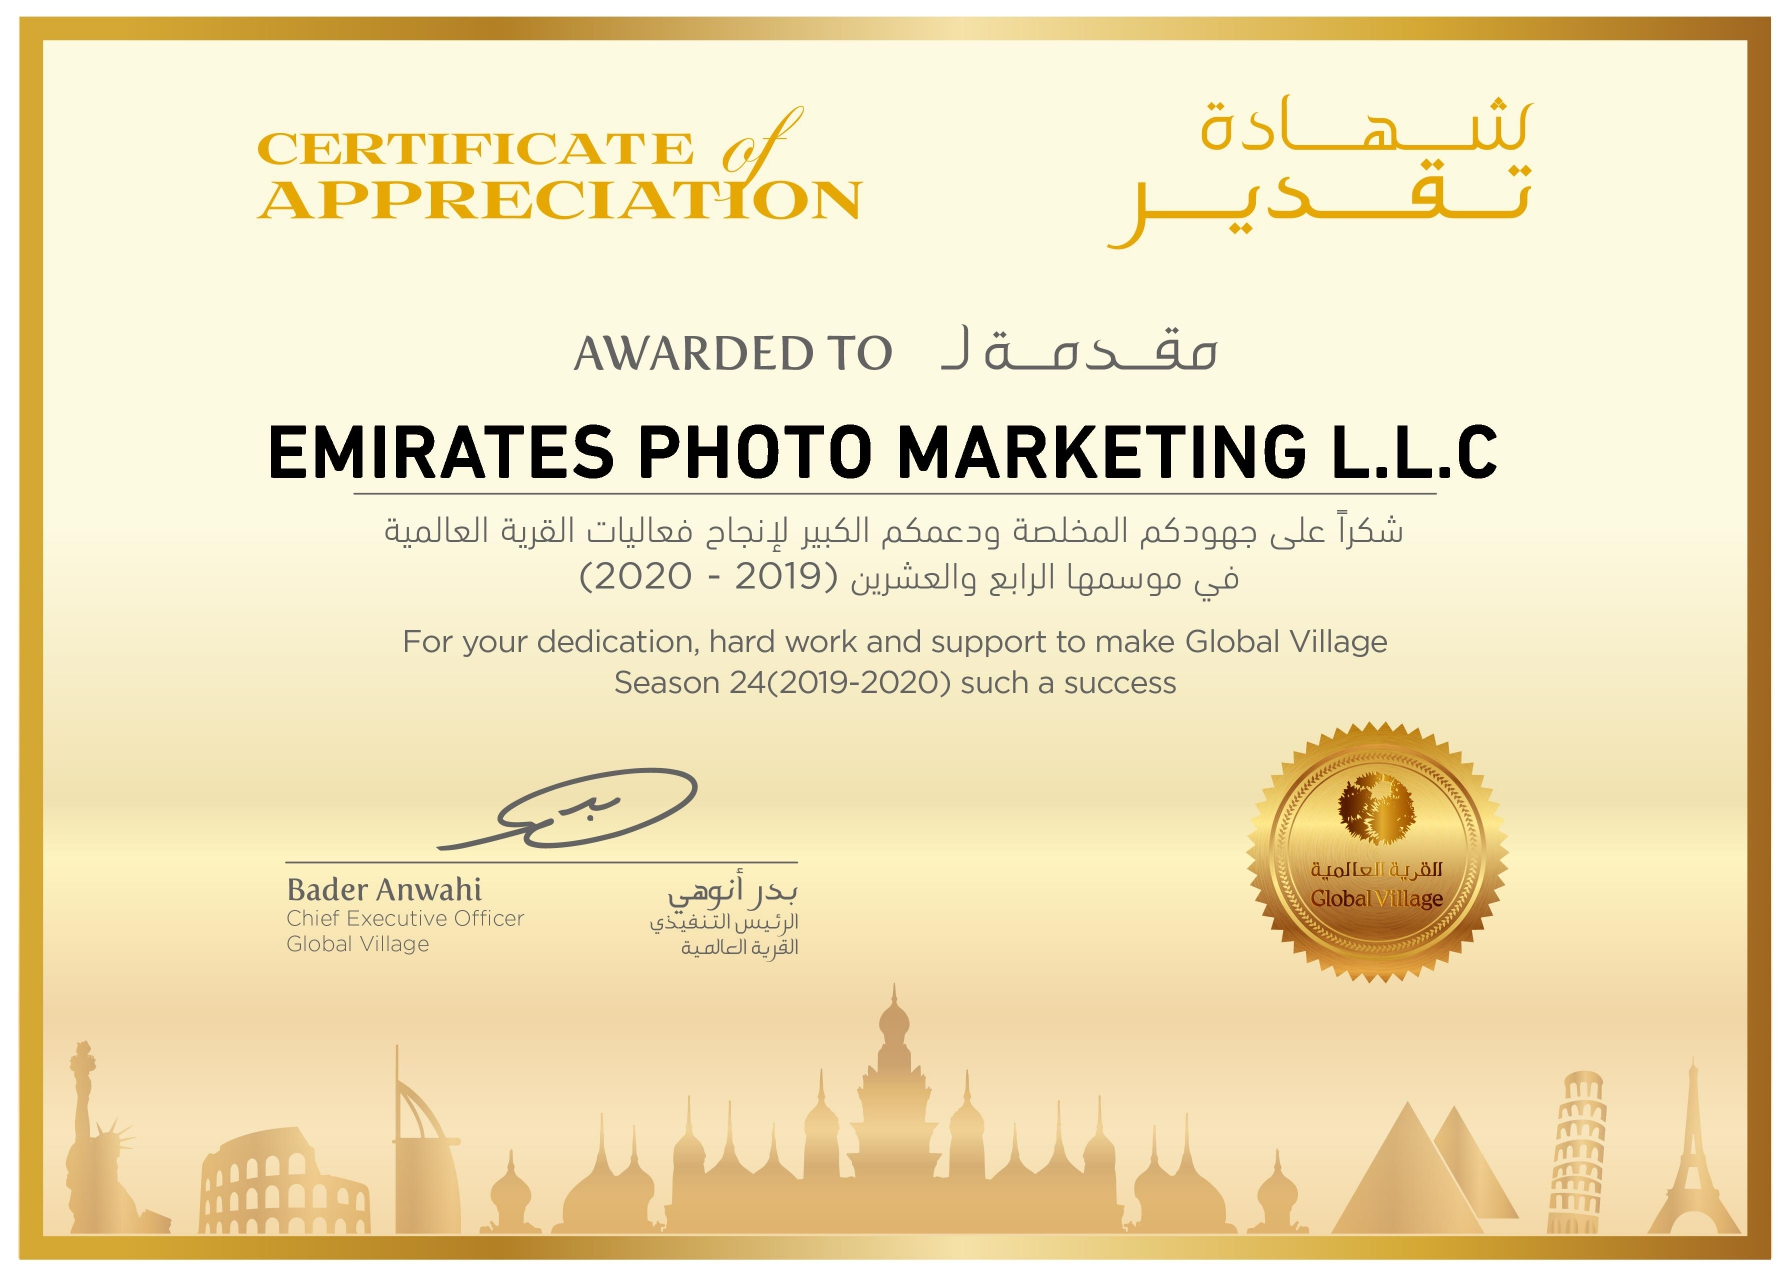 EMIRATES PHOTO MARKETING Global Village Appriciation Letter_pages-to-jpg-0001